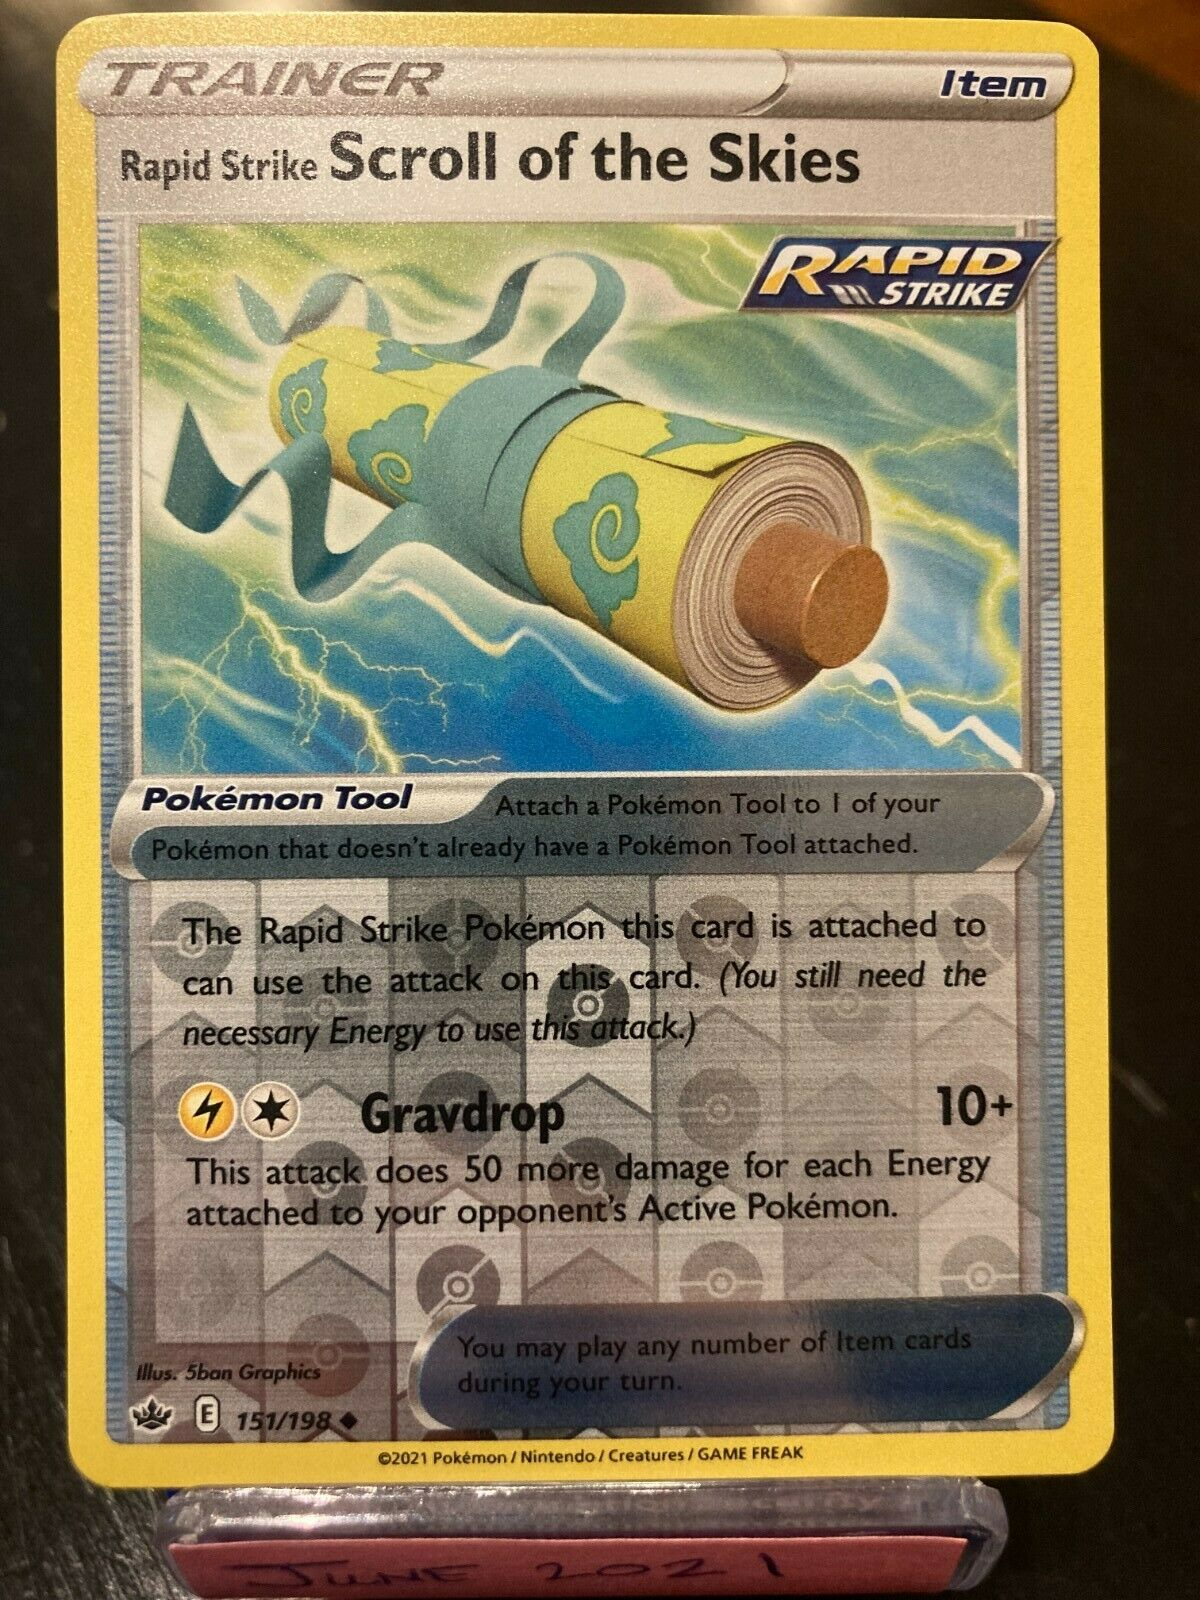 Pokemon TCG    Rapid Strike Scroll of the Skies 151/198   Chilling Reign Reverse